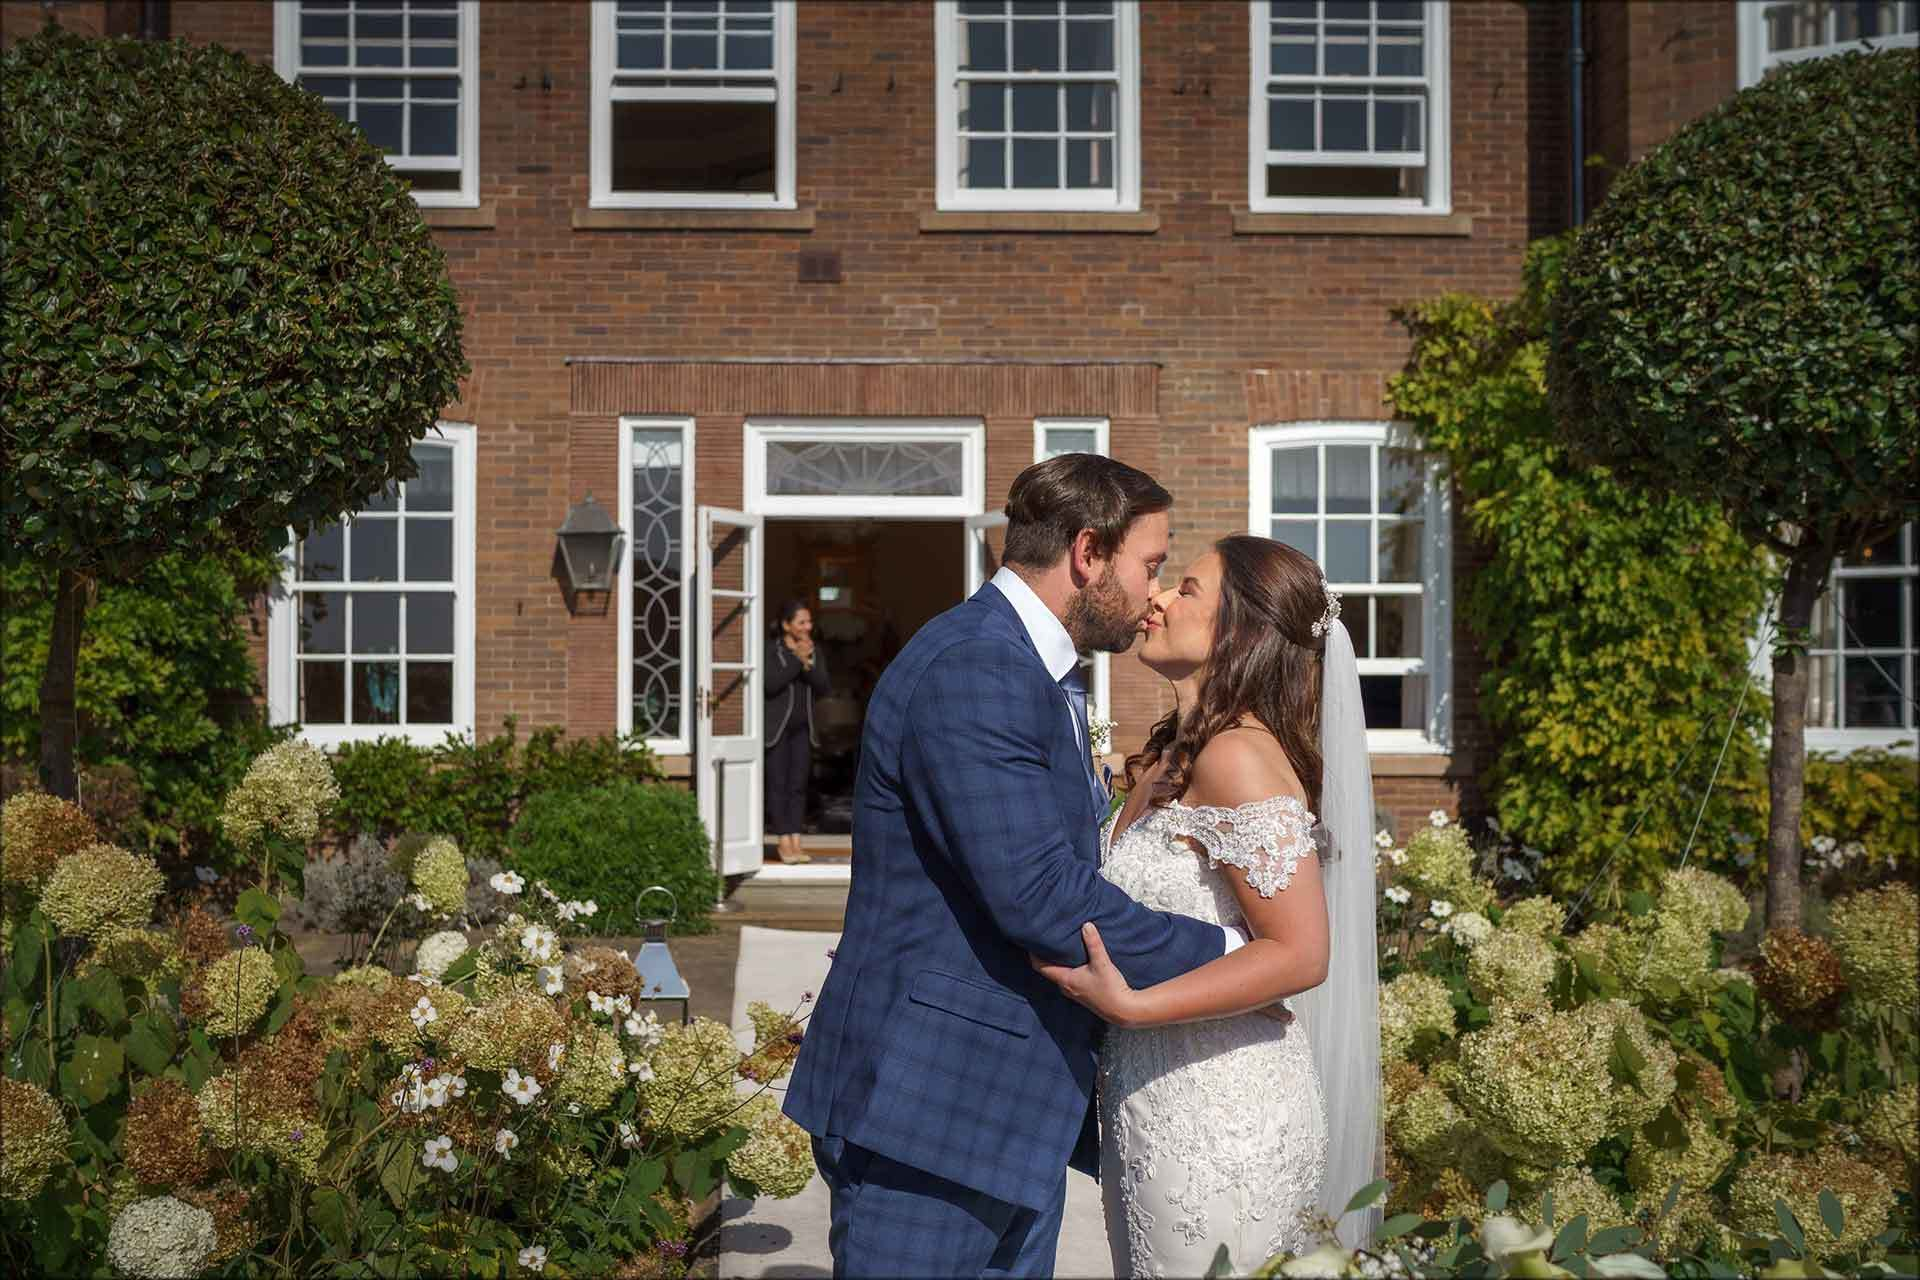 Bride and groom first kiss at Delamere Manor outdoor wedding ceremony